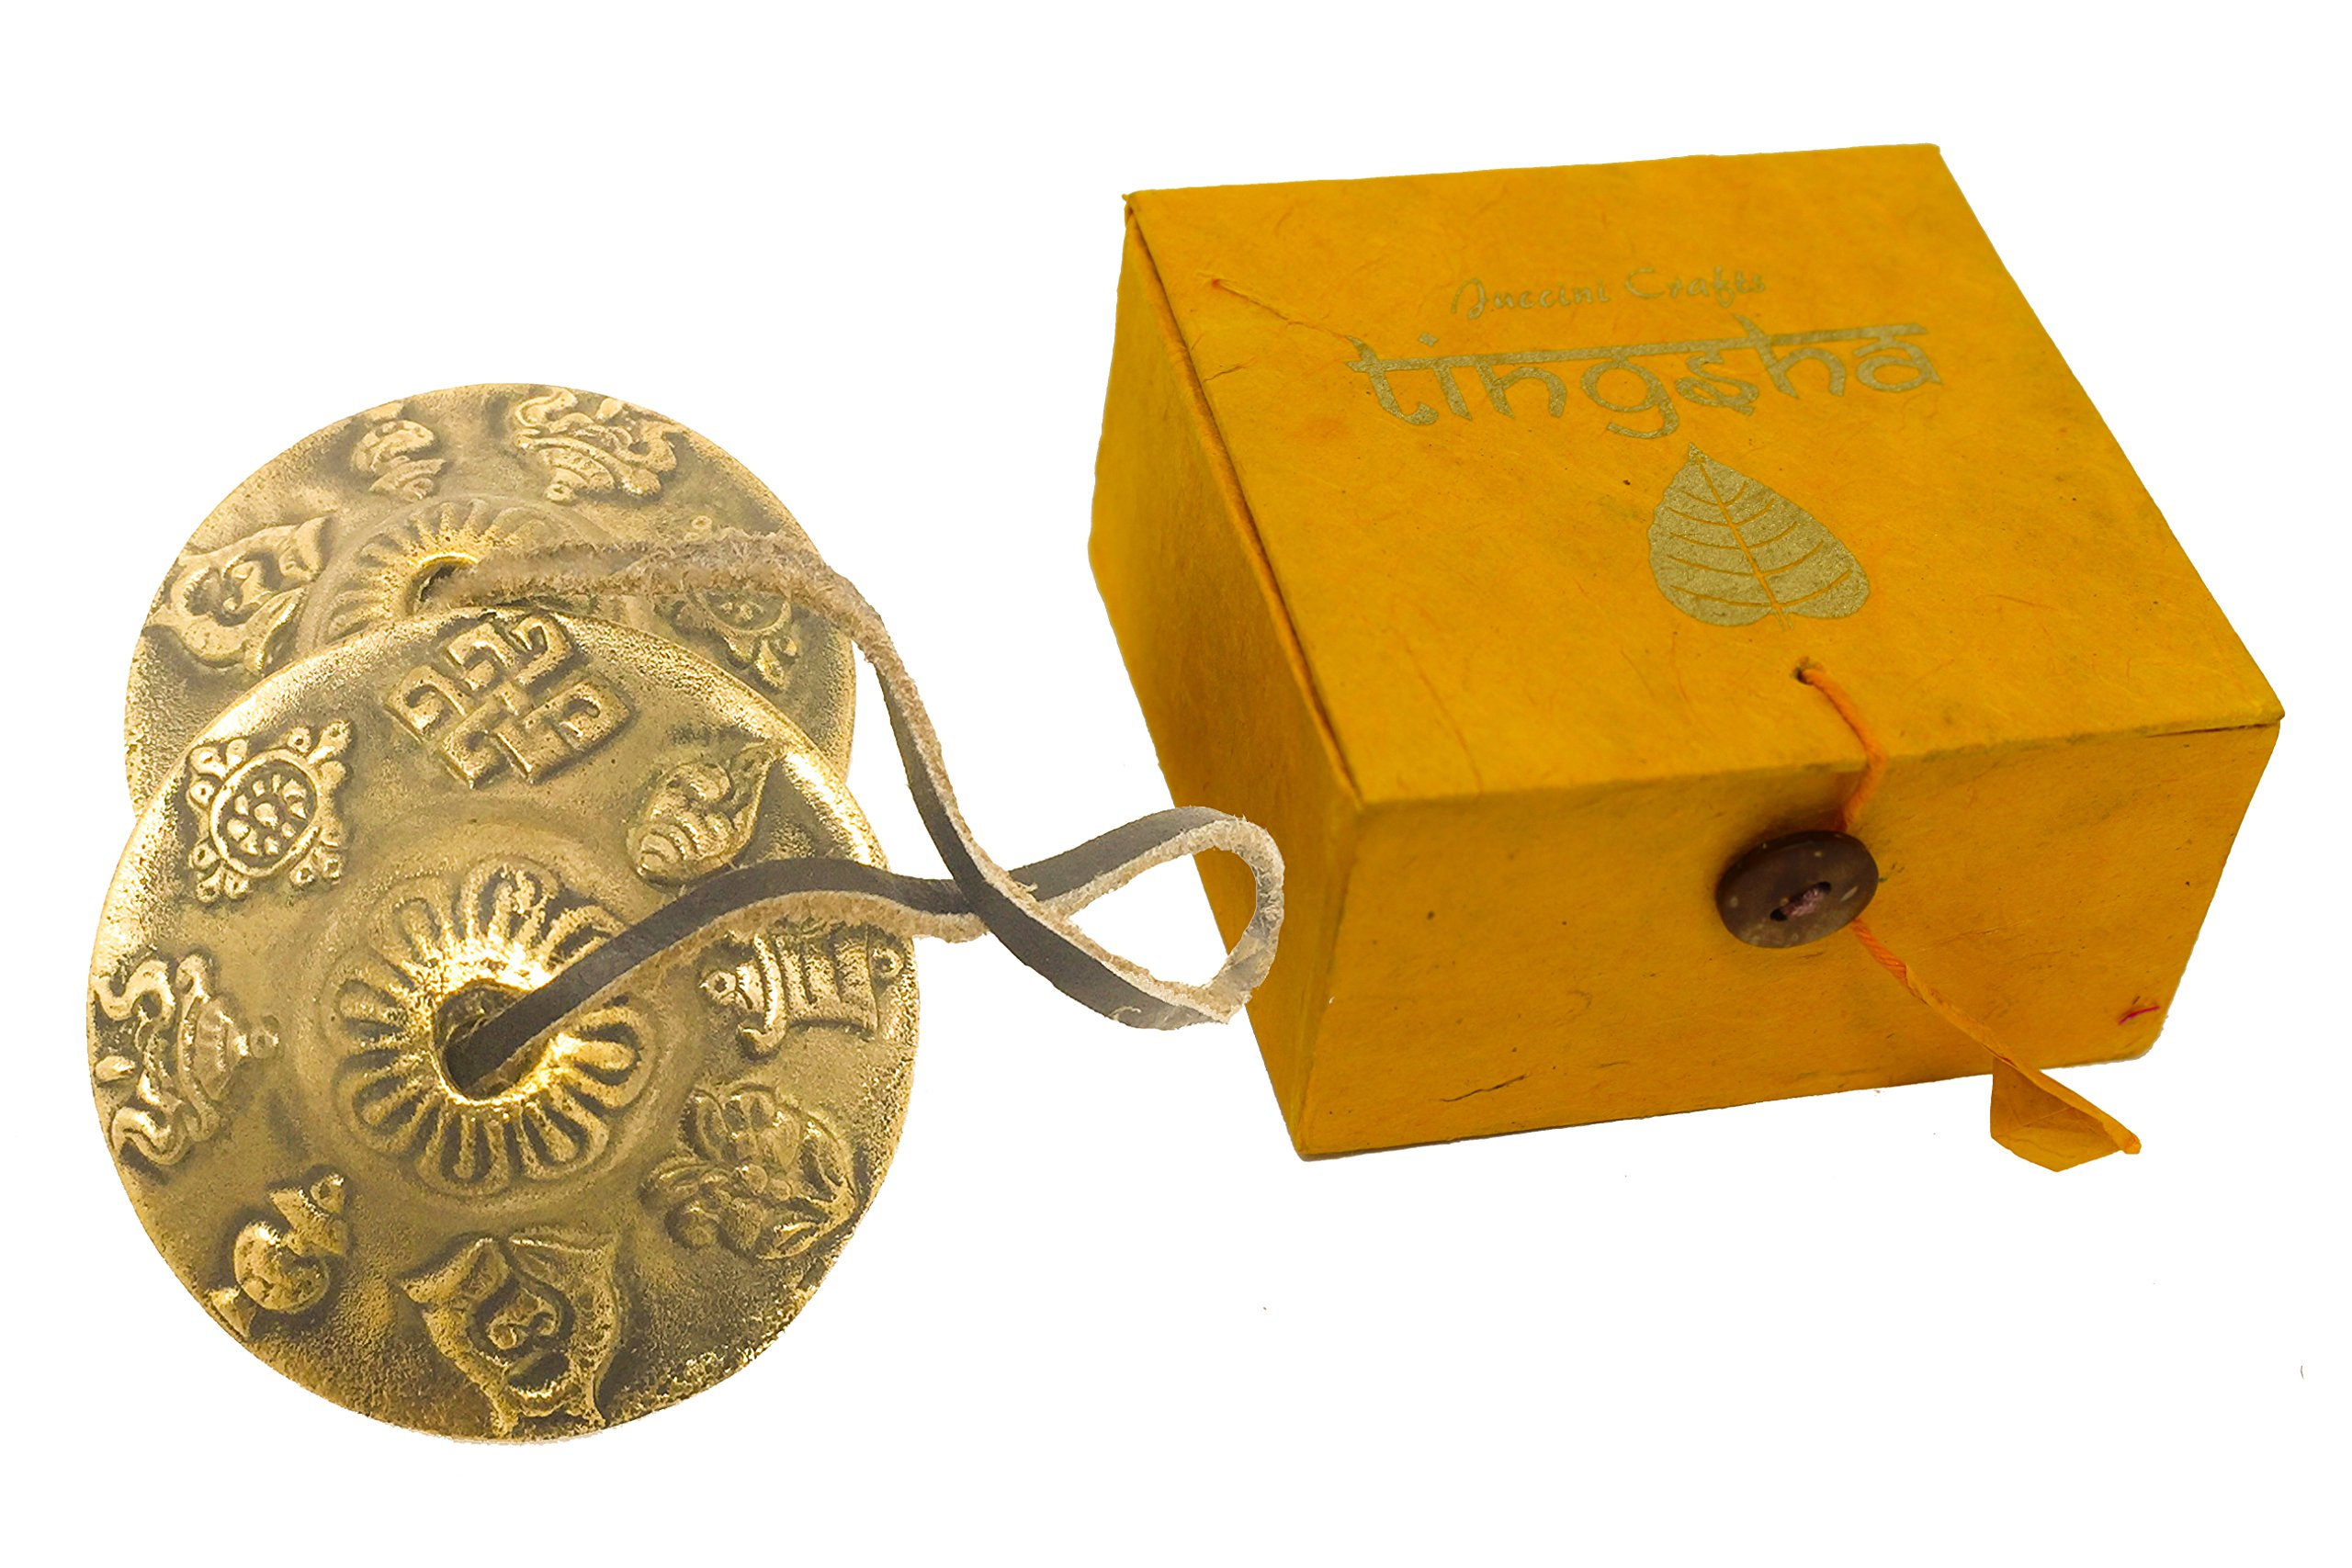 Tibetan Tingsha Cymbals ~ For Meditation & Yoga ~ Chimes With Clear Resonating Sound In Gift Box with Instructions To Play (Large, Auspicious Symbol)